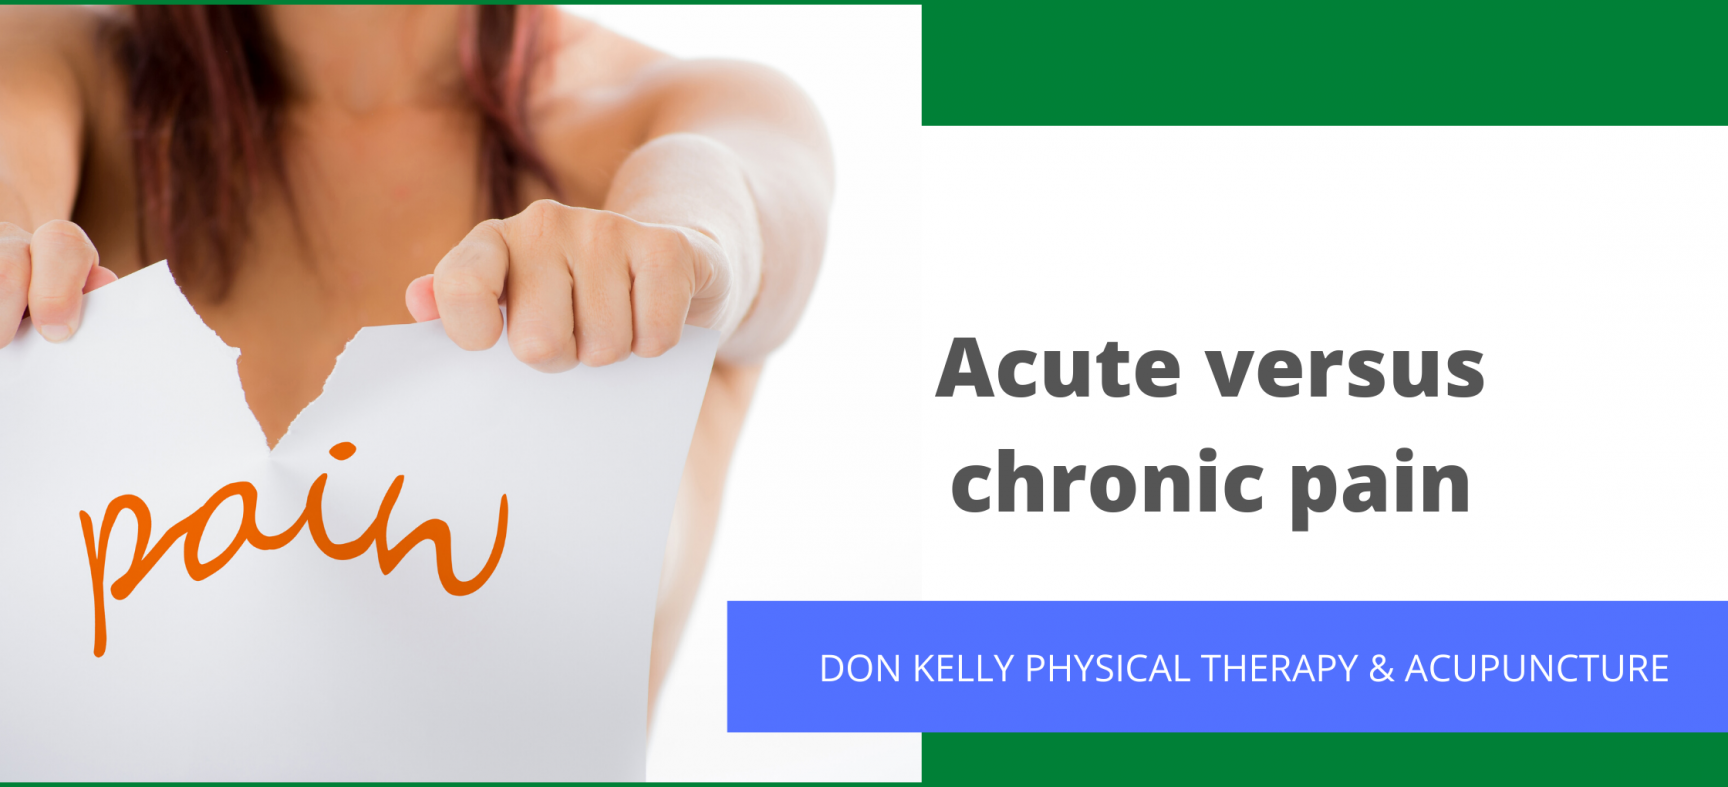 Acute versus chronic pain